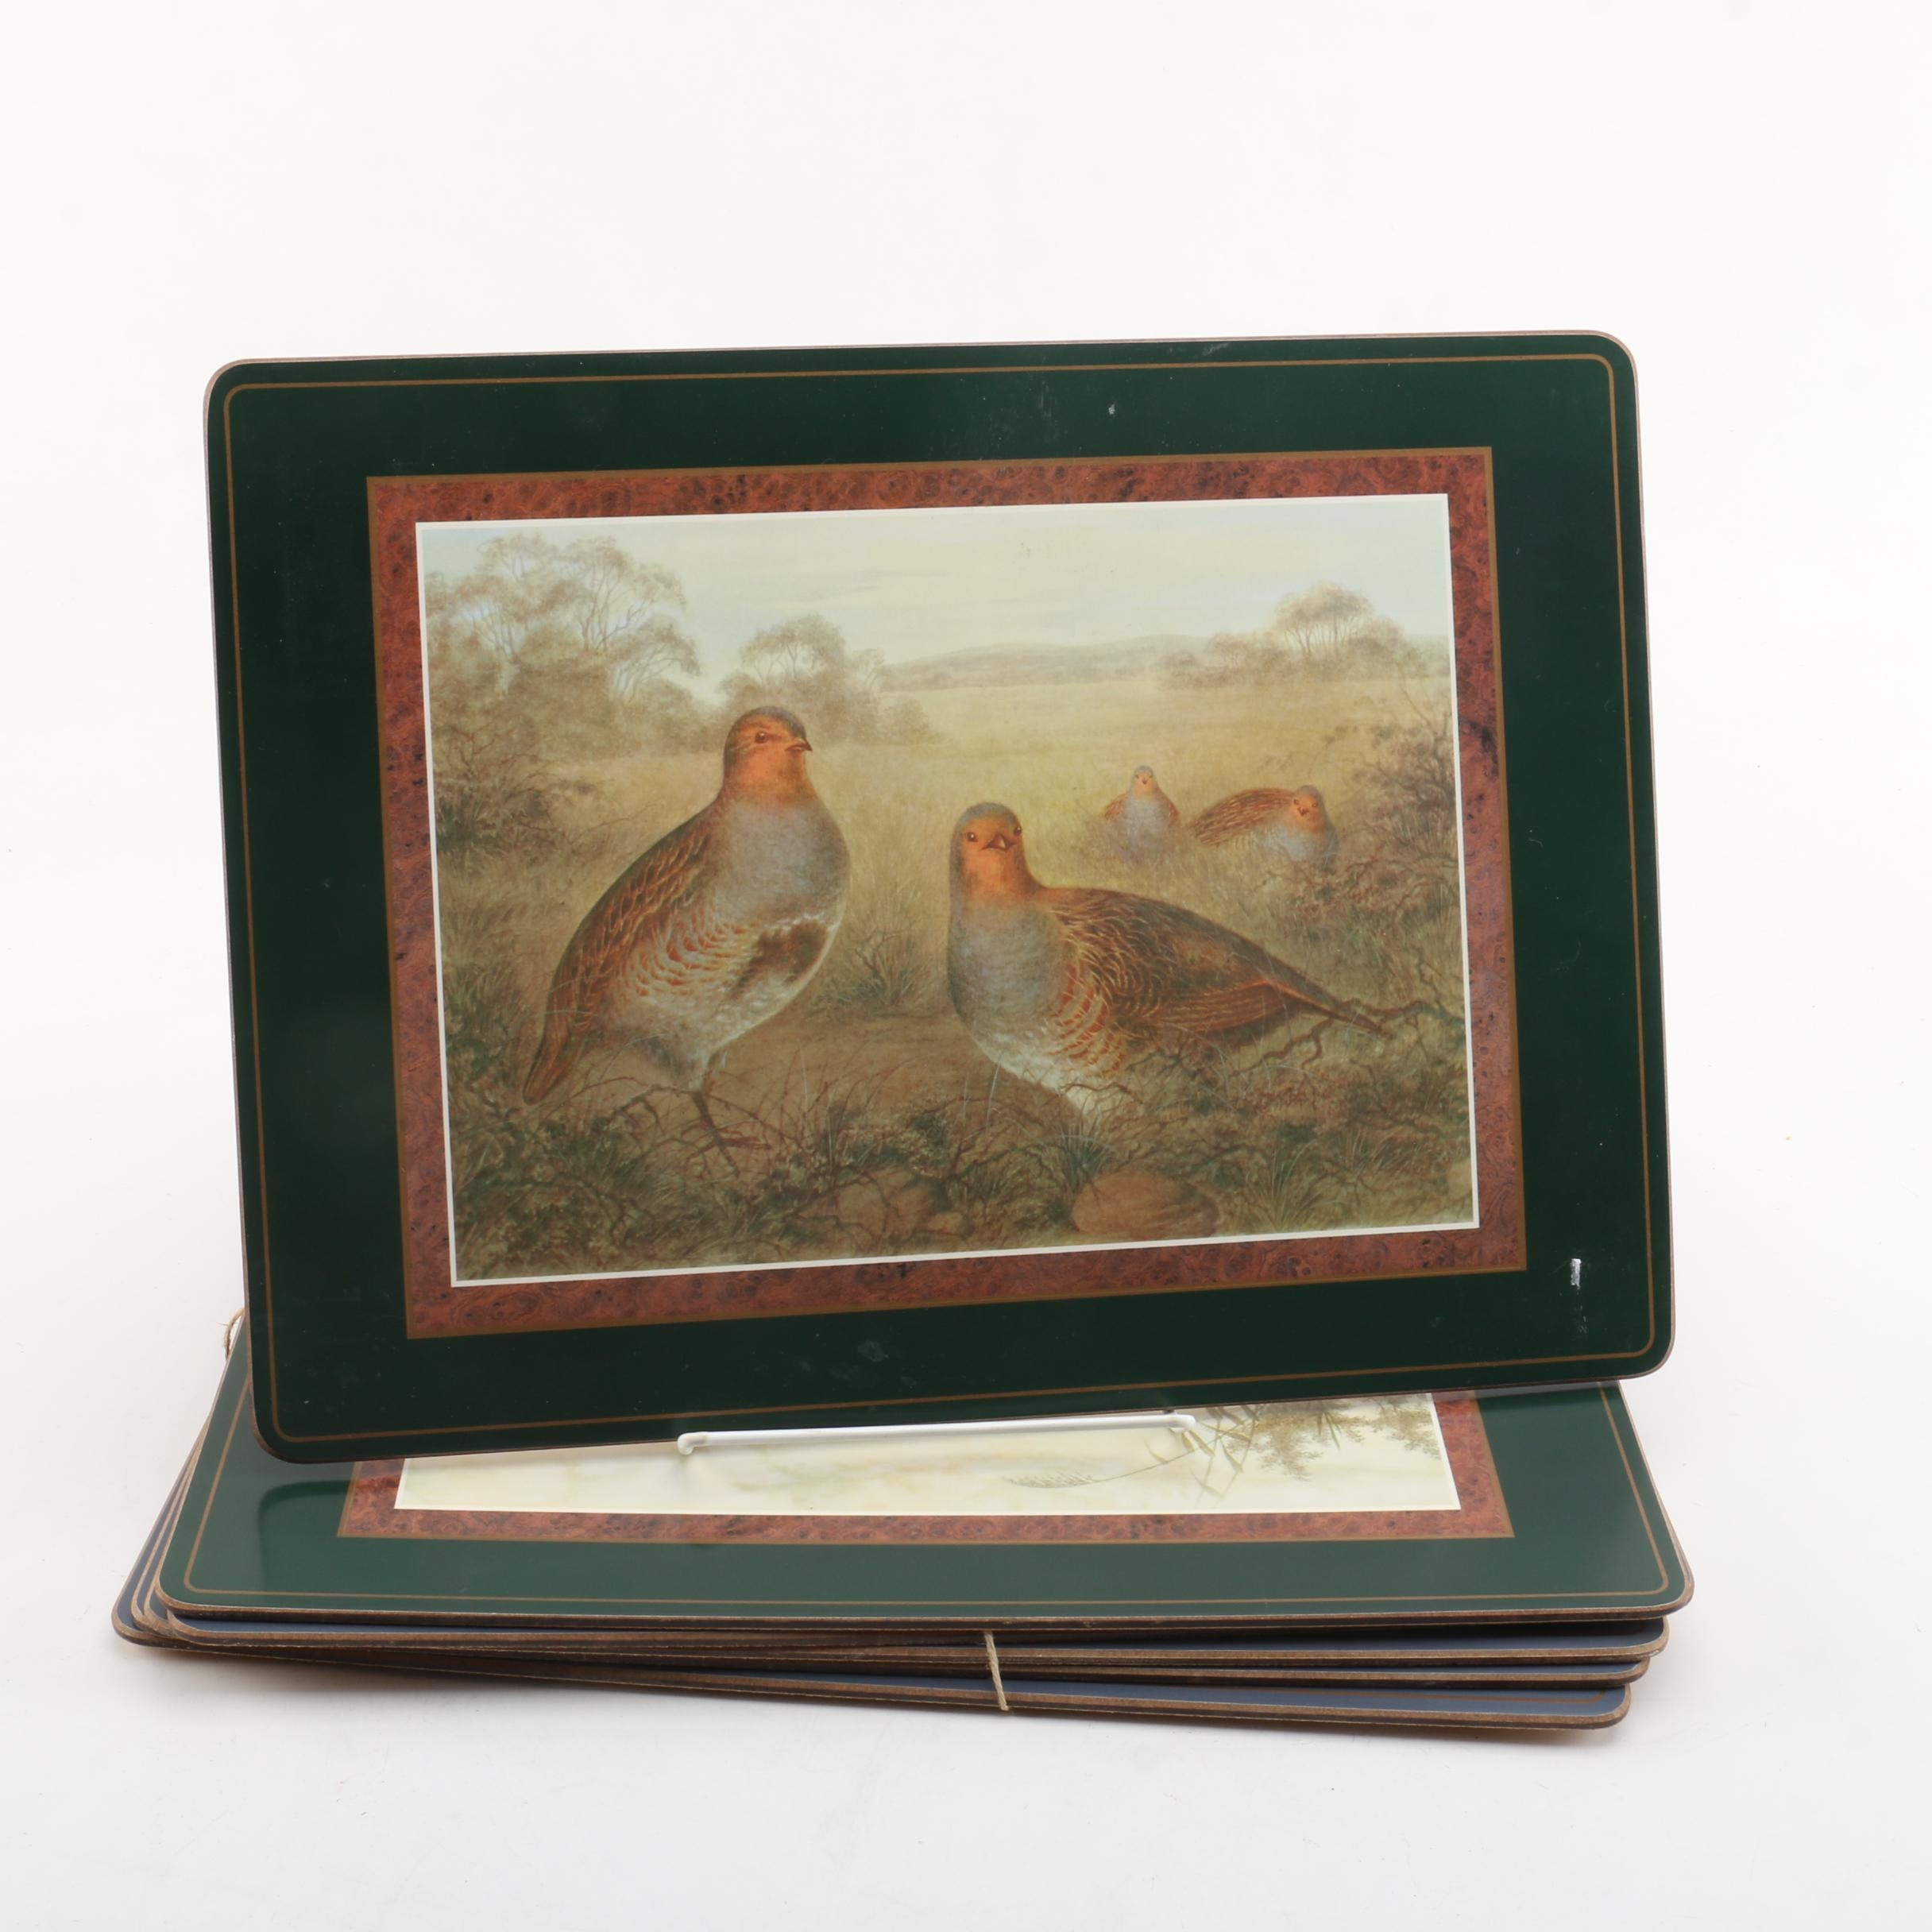 Assorted Pimpernel Placemats